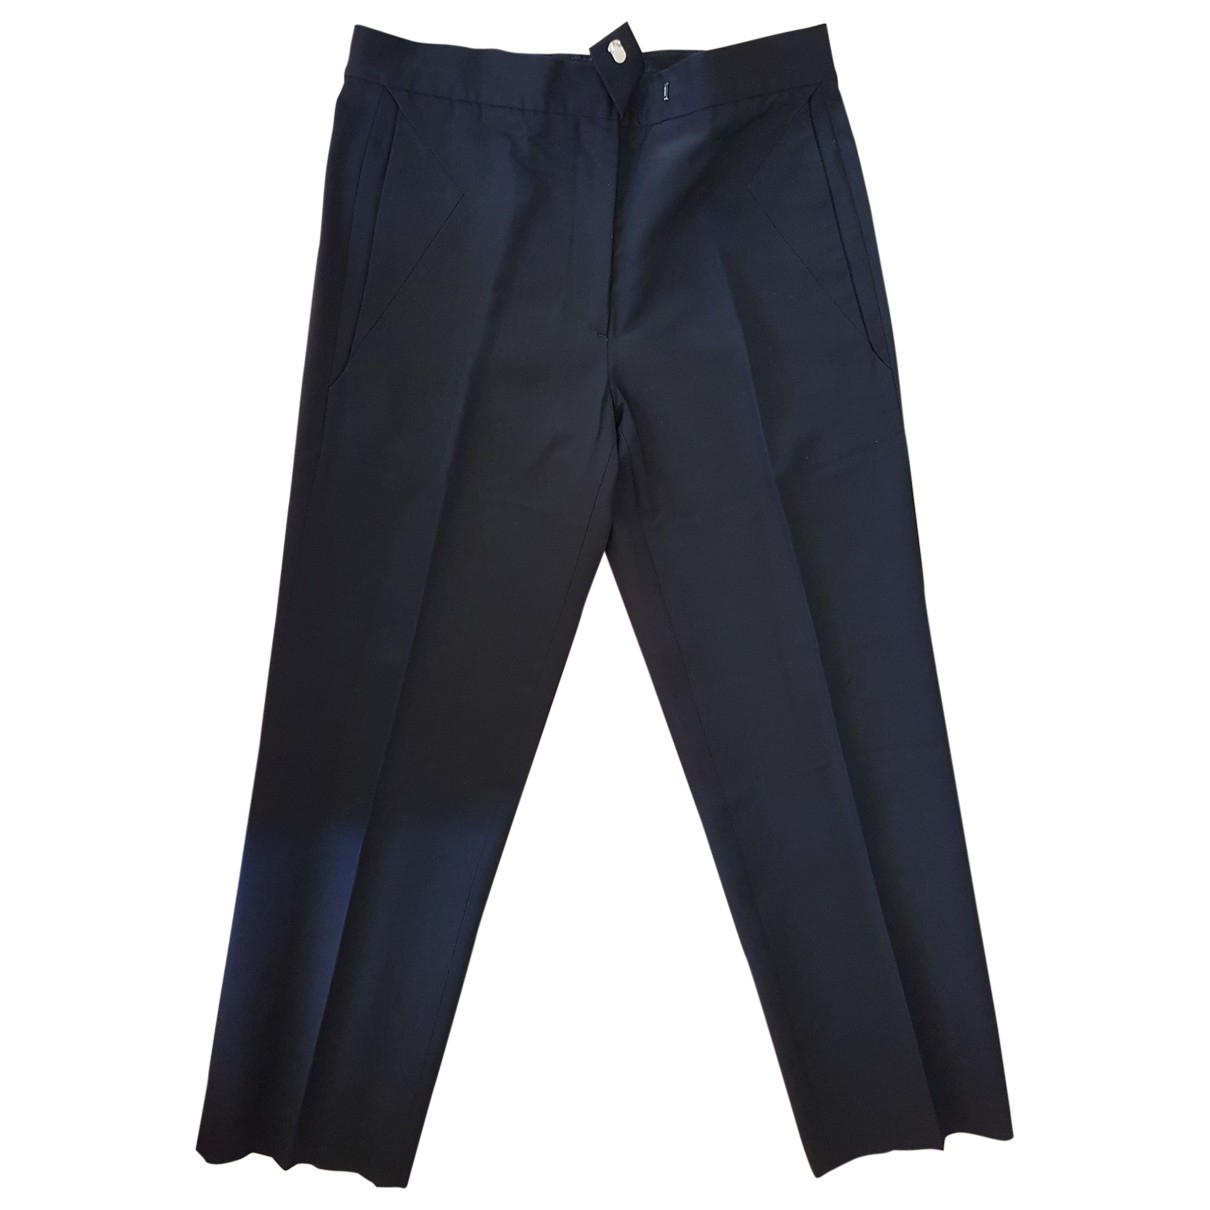 Maison Martin Margiela \N Black Trousers for Women 44 IT